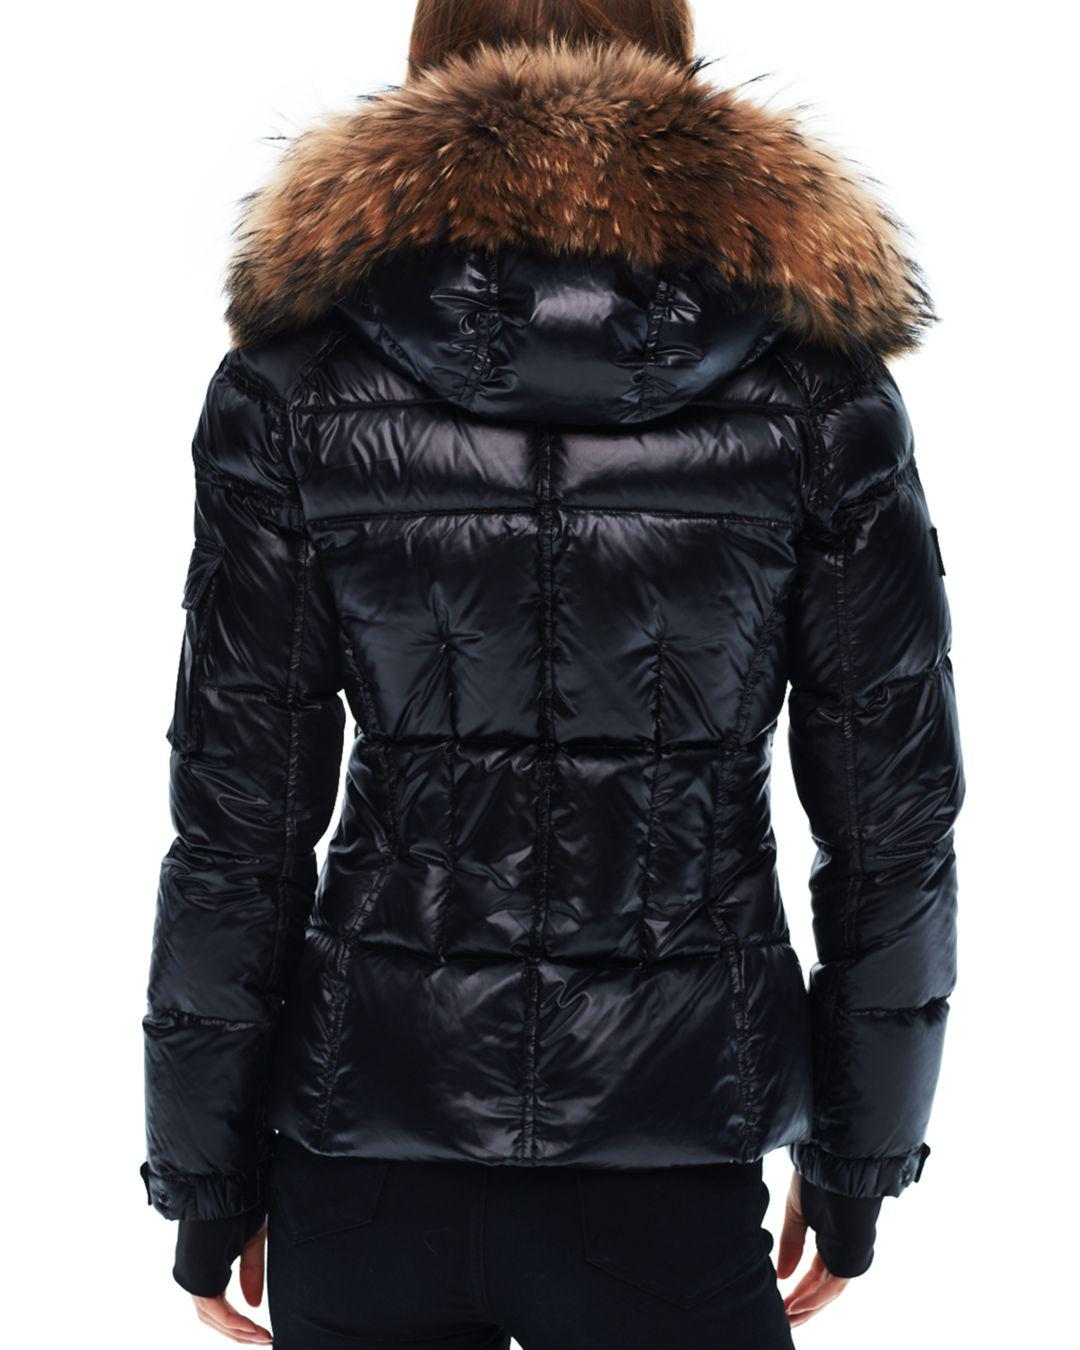 58f36d792ef3 Sam. Blake Fur-trim Down Coat in Black - Lyst